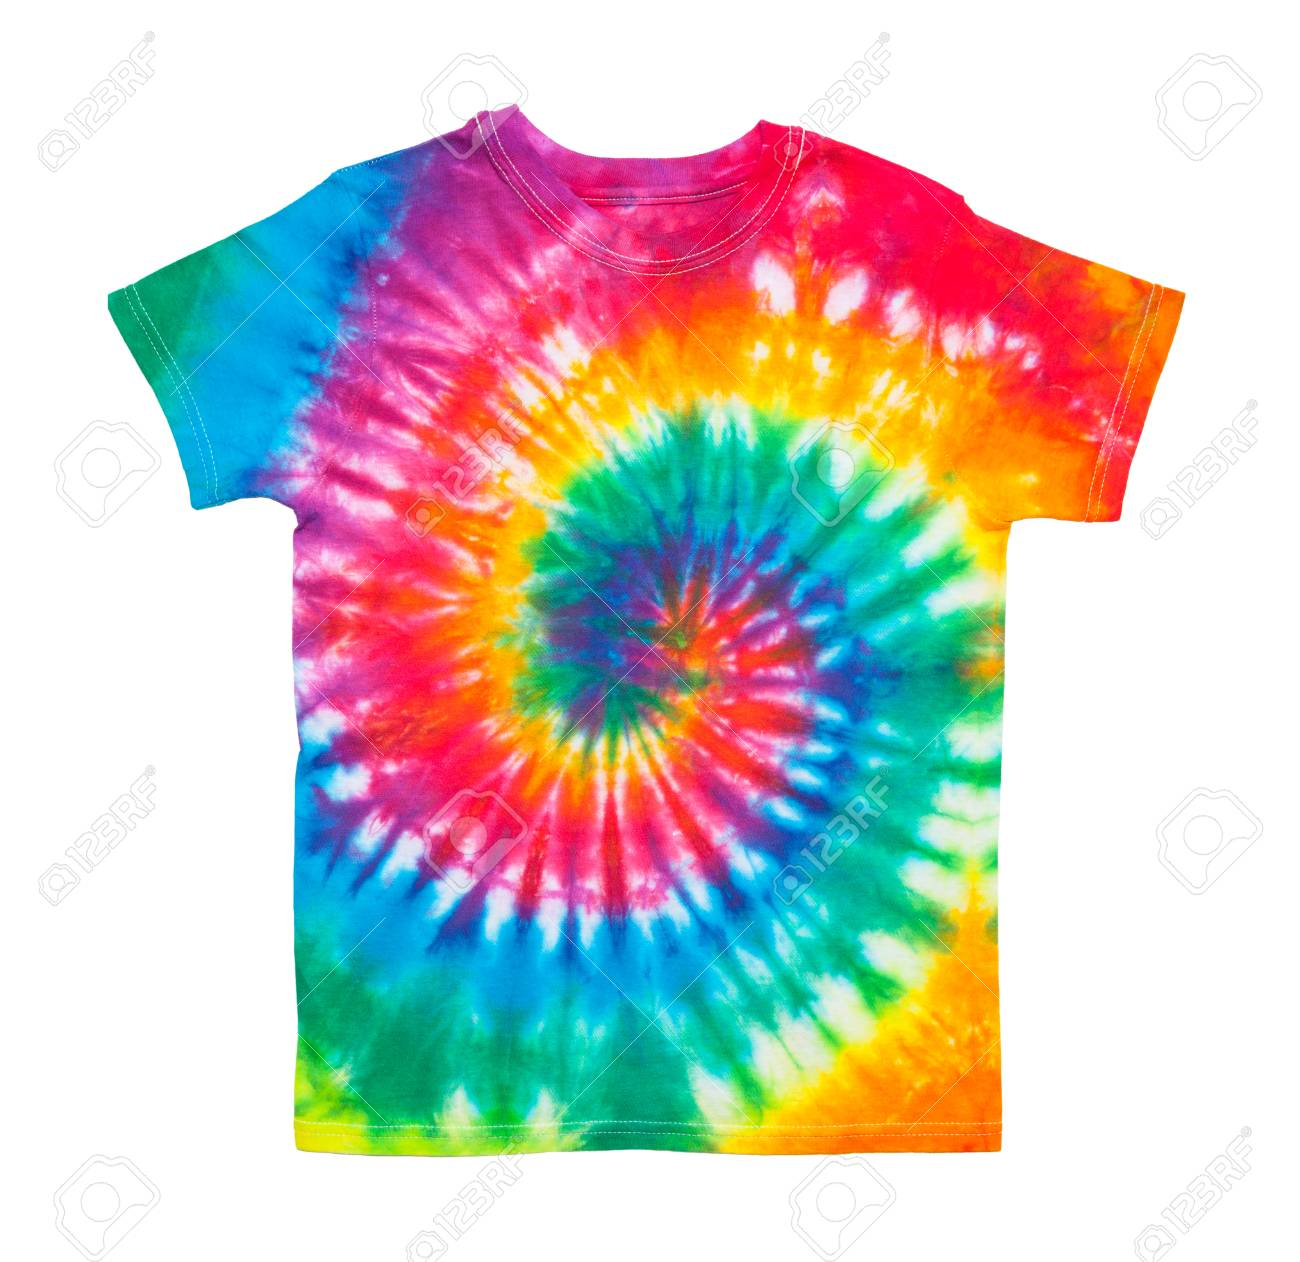 e0895ce1 Spiral Tie Dye Shirt Isolated on White Background. Stock Photo - 92402603